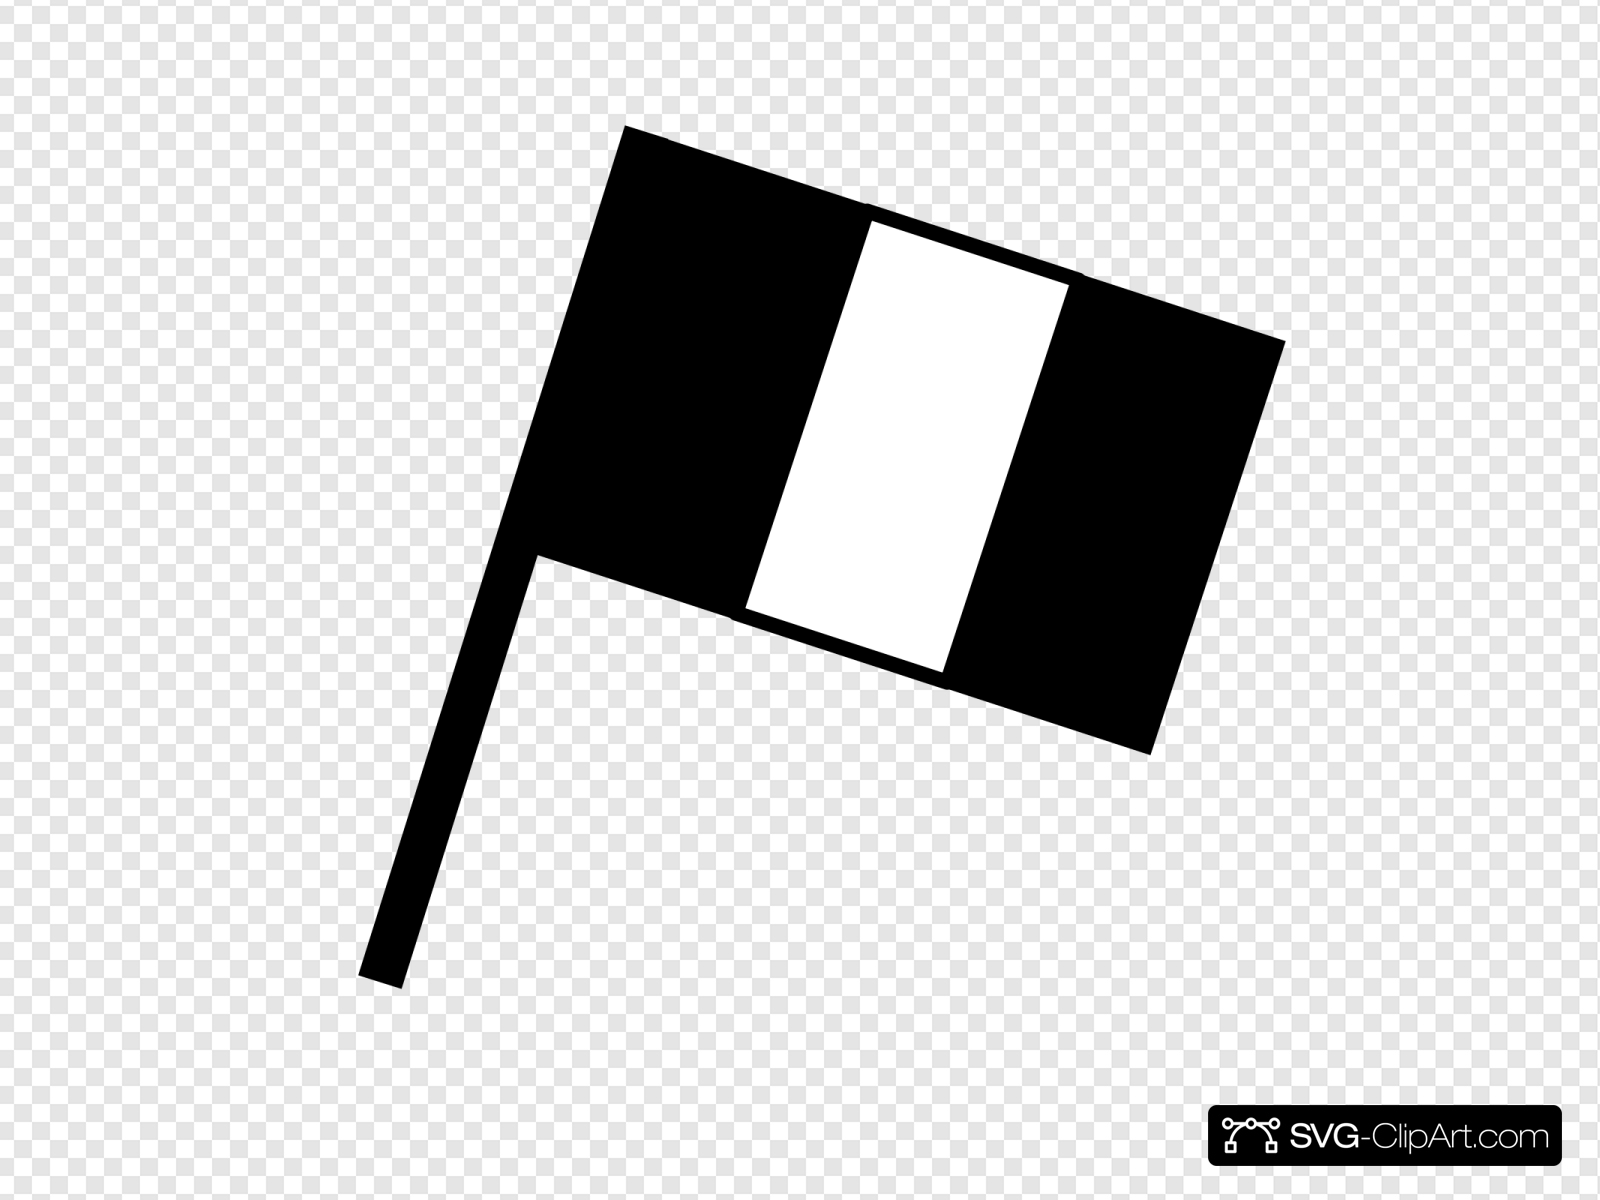 Flag Of France Silhouette Clip art, Icon and SVG.